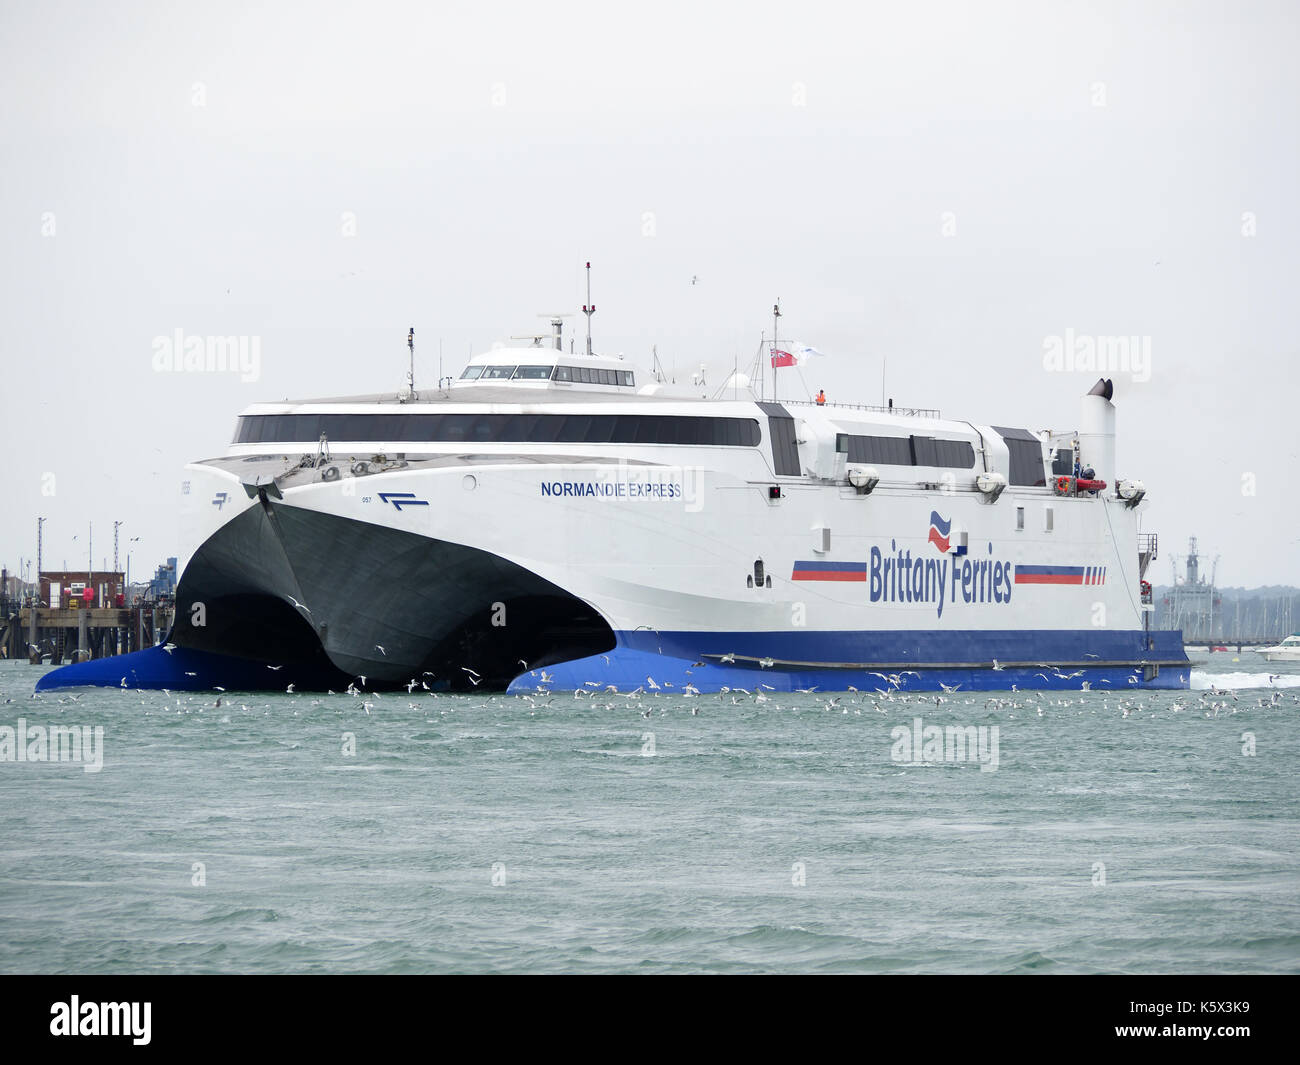 View of the Brittany Ferries Normandie Express high-speed catamaran departing from Portsmouth Harbour - Stock Image